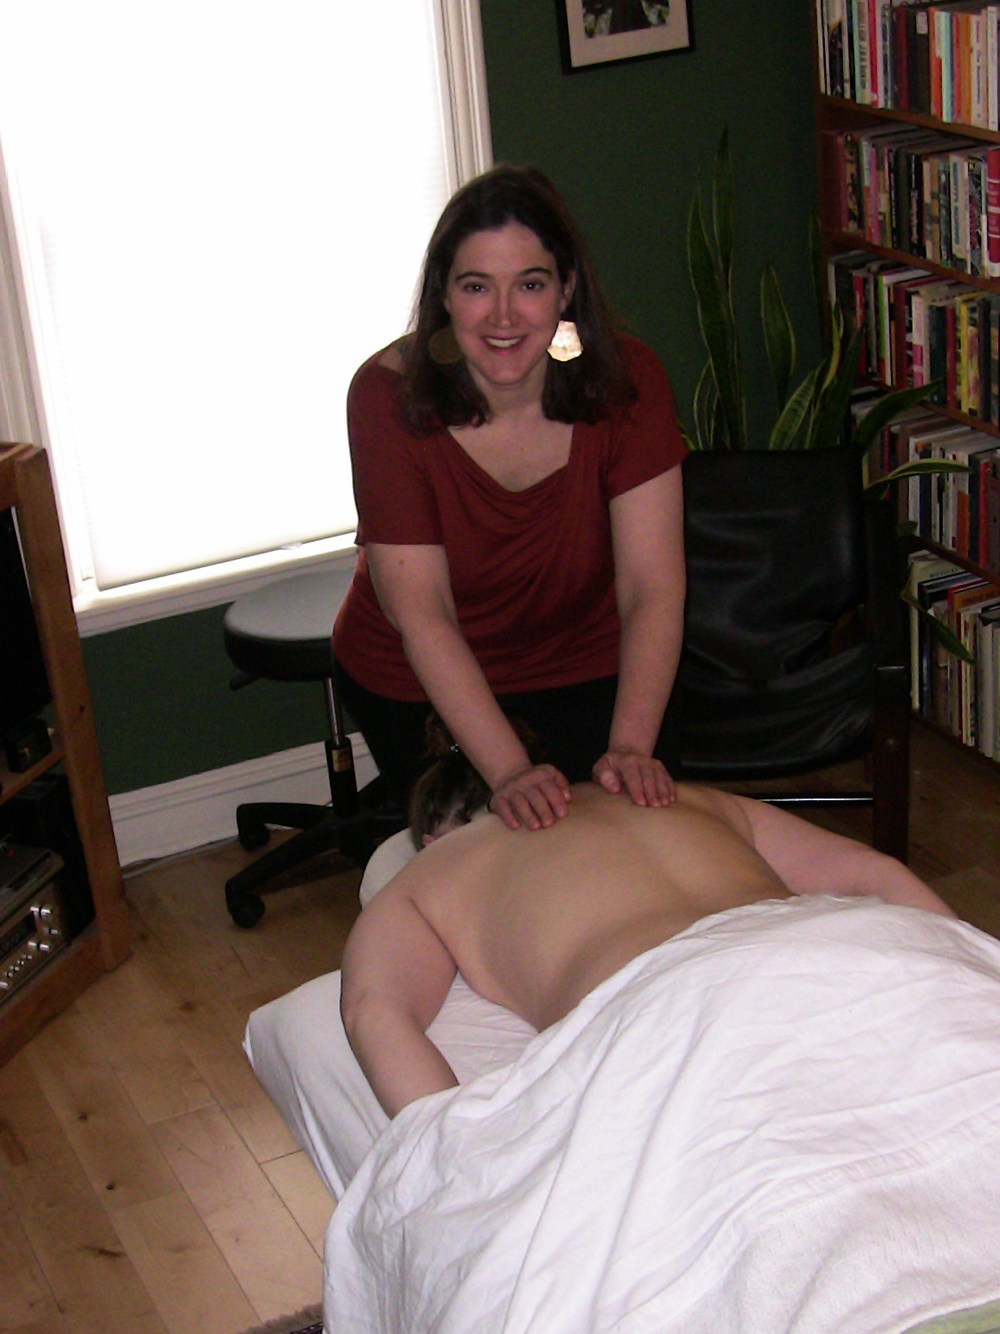 Massage therapy Burlington VT